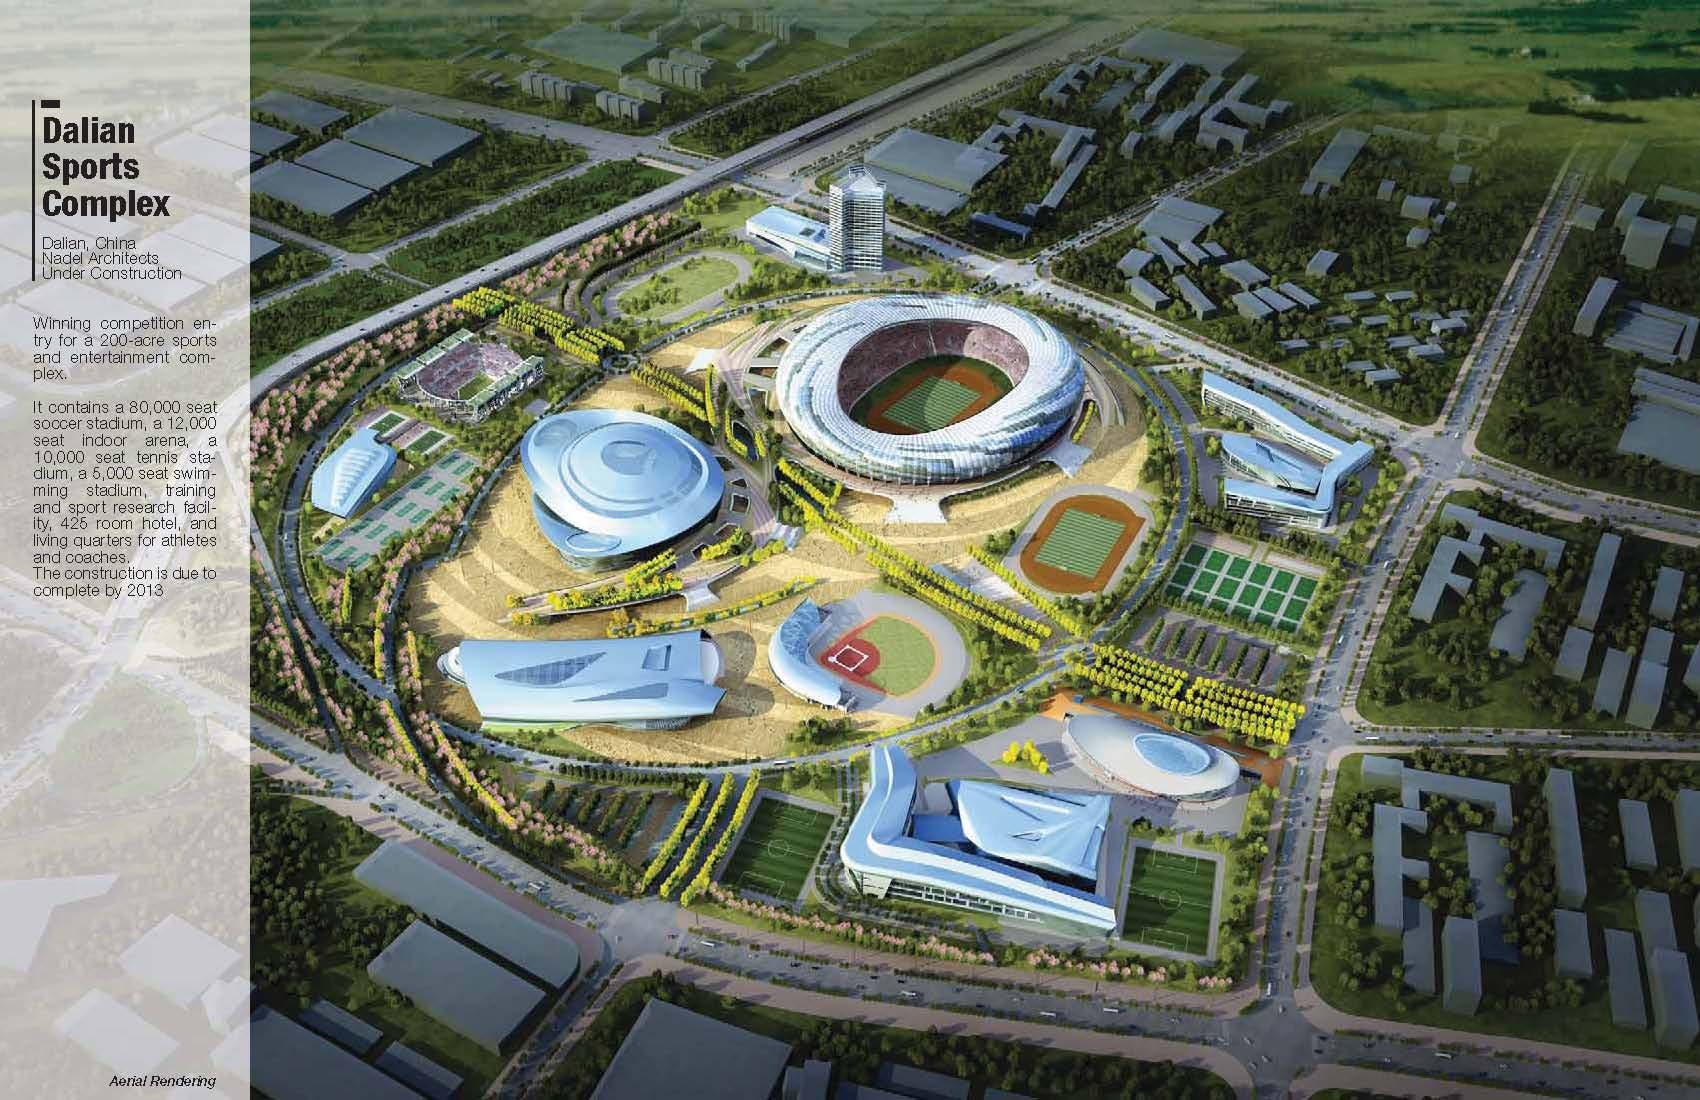 dalian sports complex andre abrahamian aia archinect